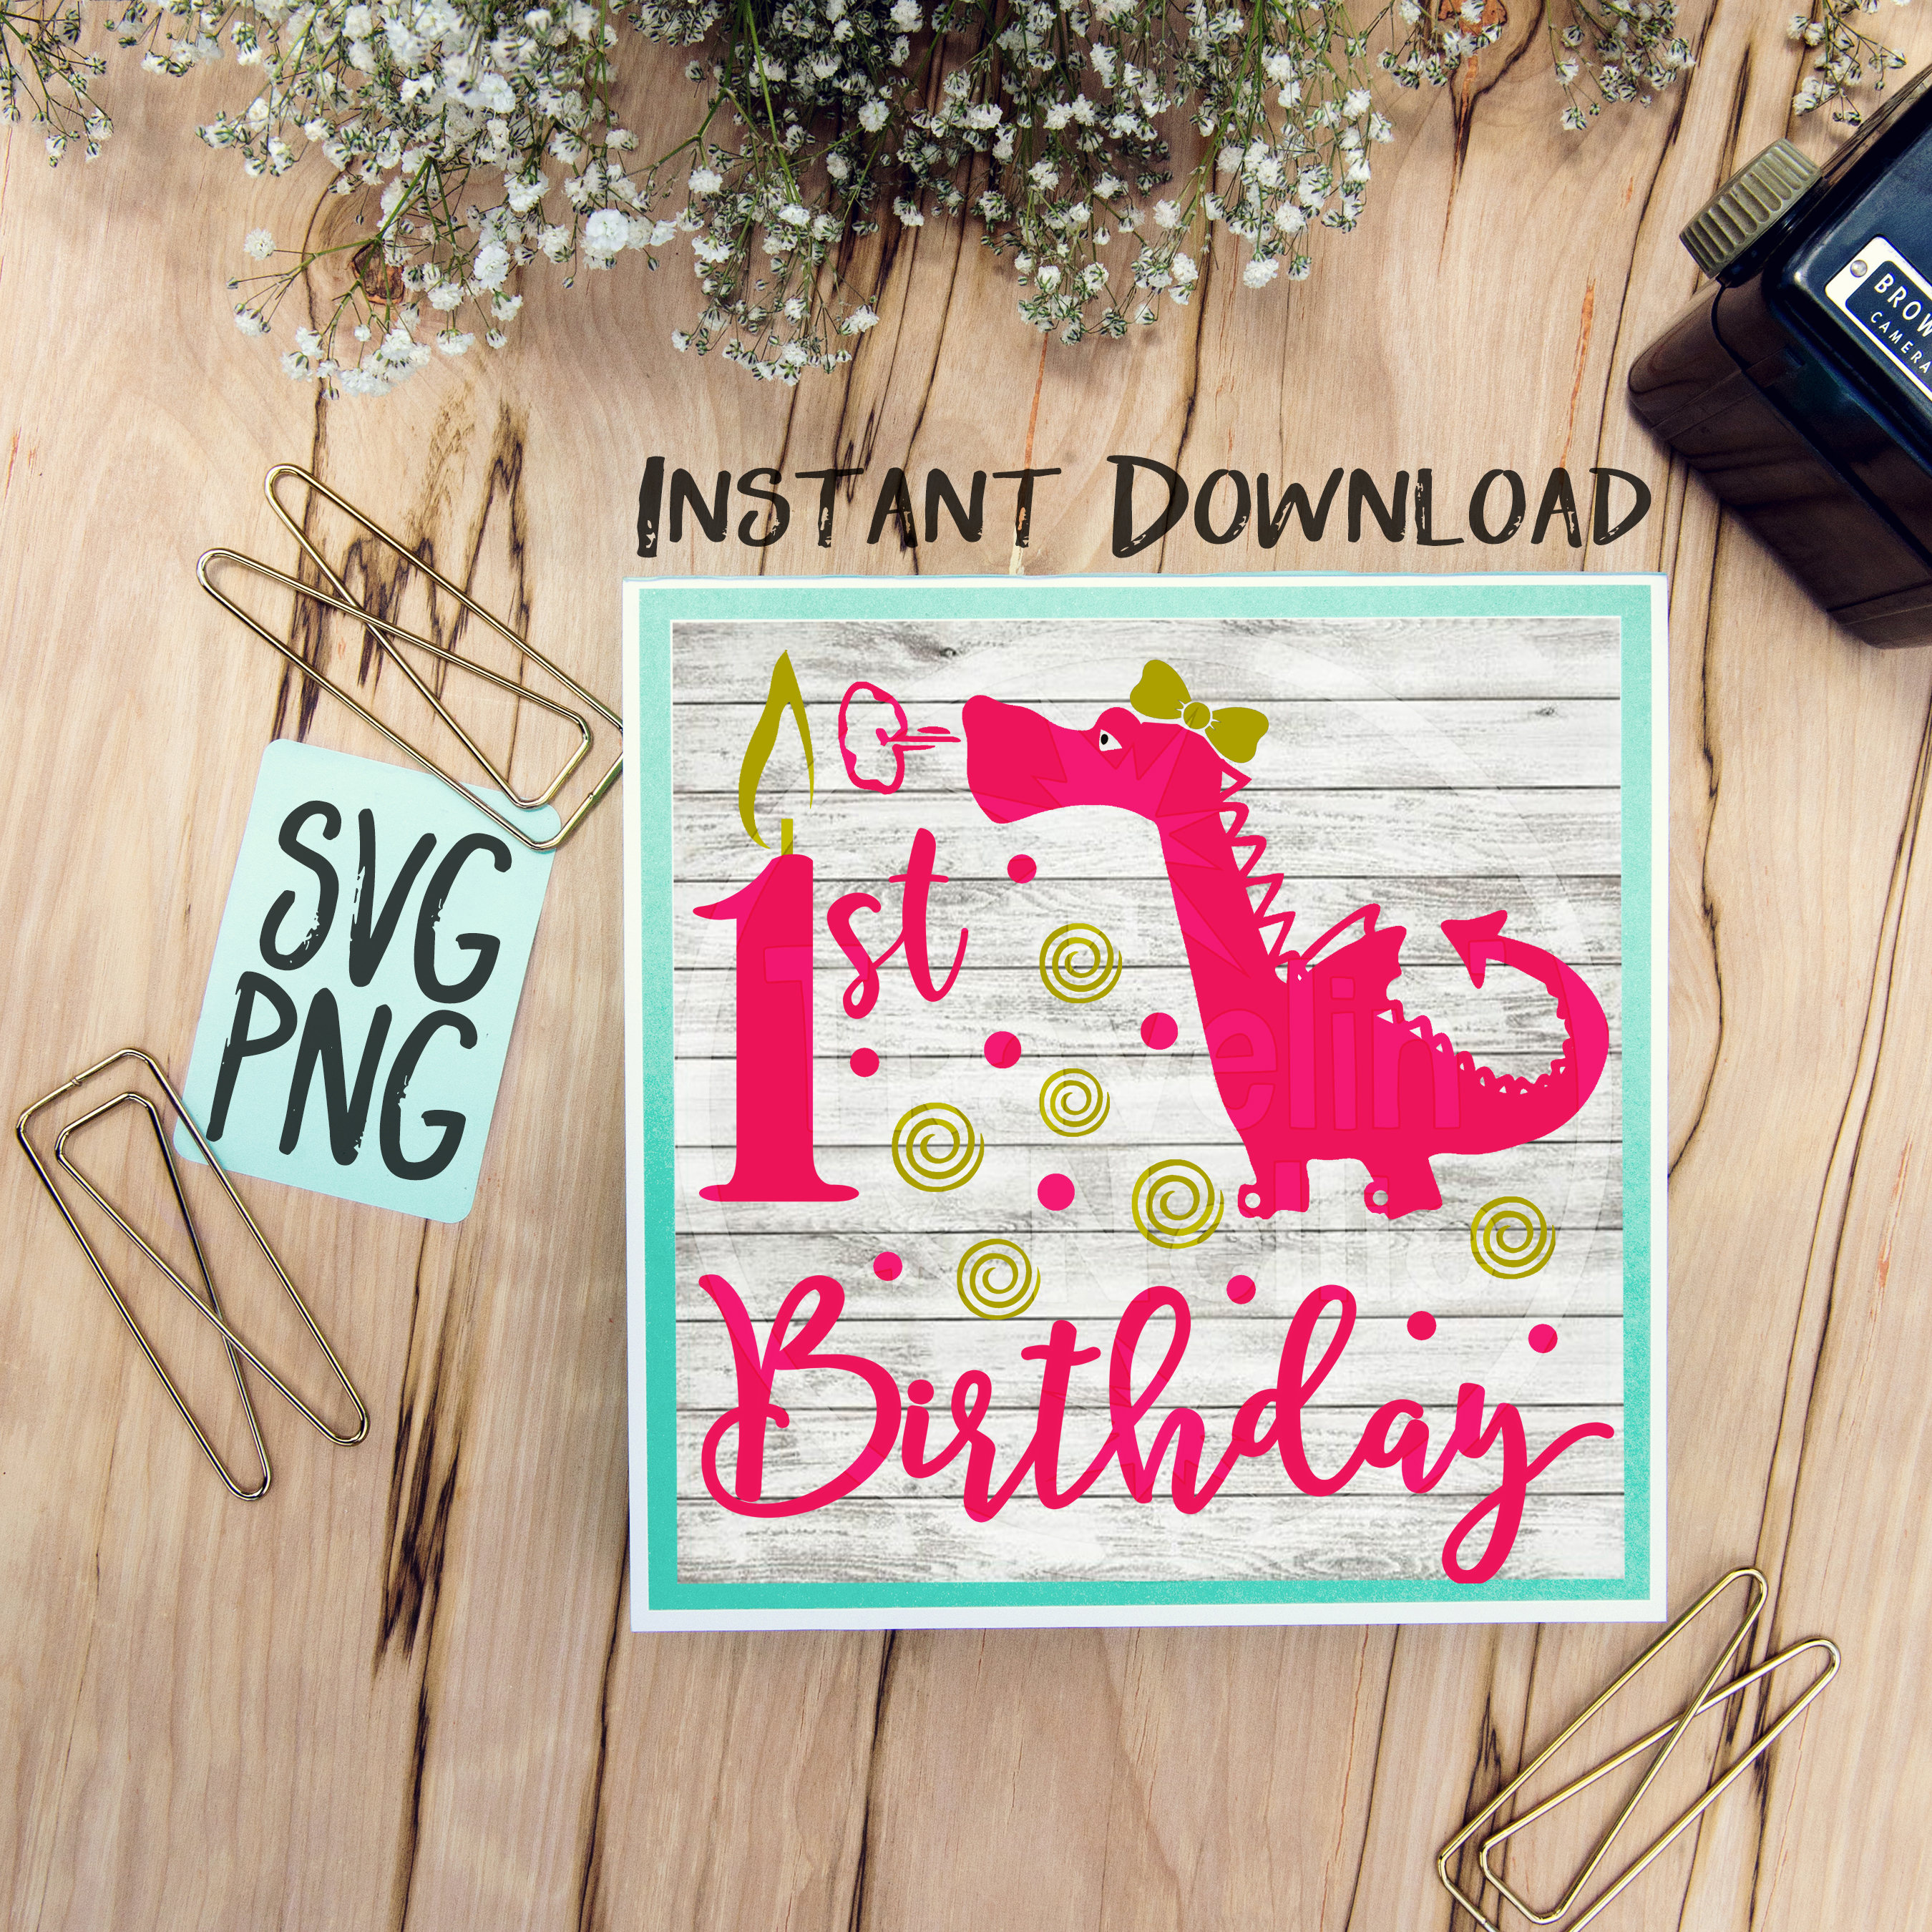 929859a37 1st Birthday Dragon Girl SVG Print or Cut File Great for Shirts Signs Cards  Etc. Silhouette Studio Cricut Cameo Vinyl Sublimation First One